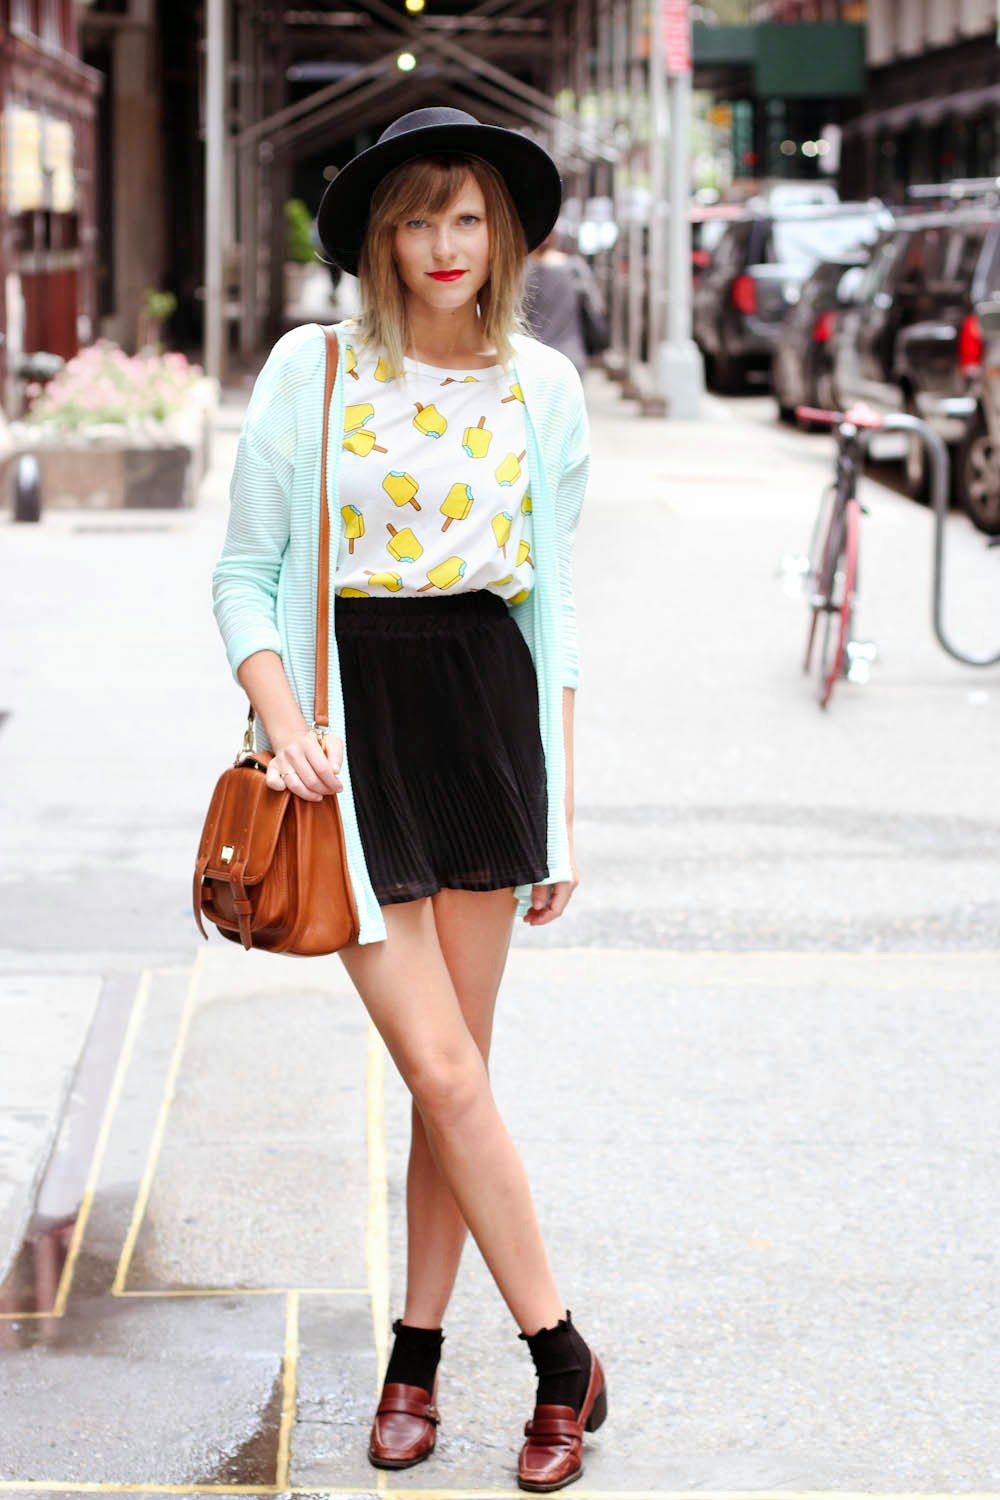 nyc vintage fashion, popsicle shirt, vintage loafers, socks and loafers, forever 21